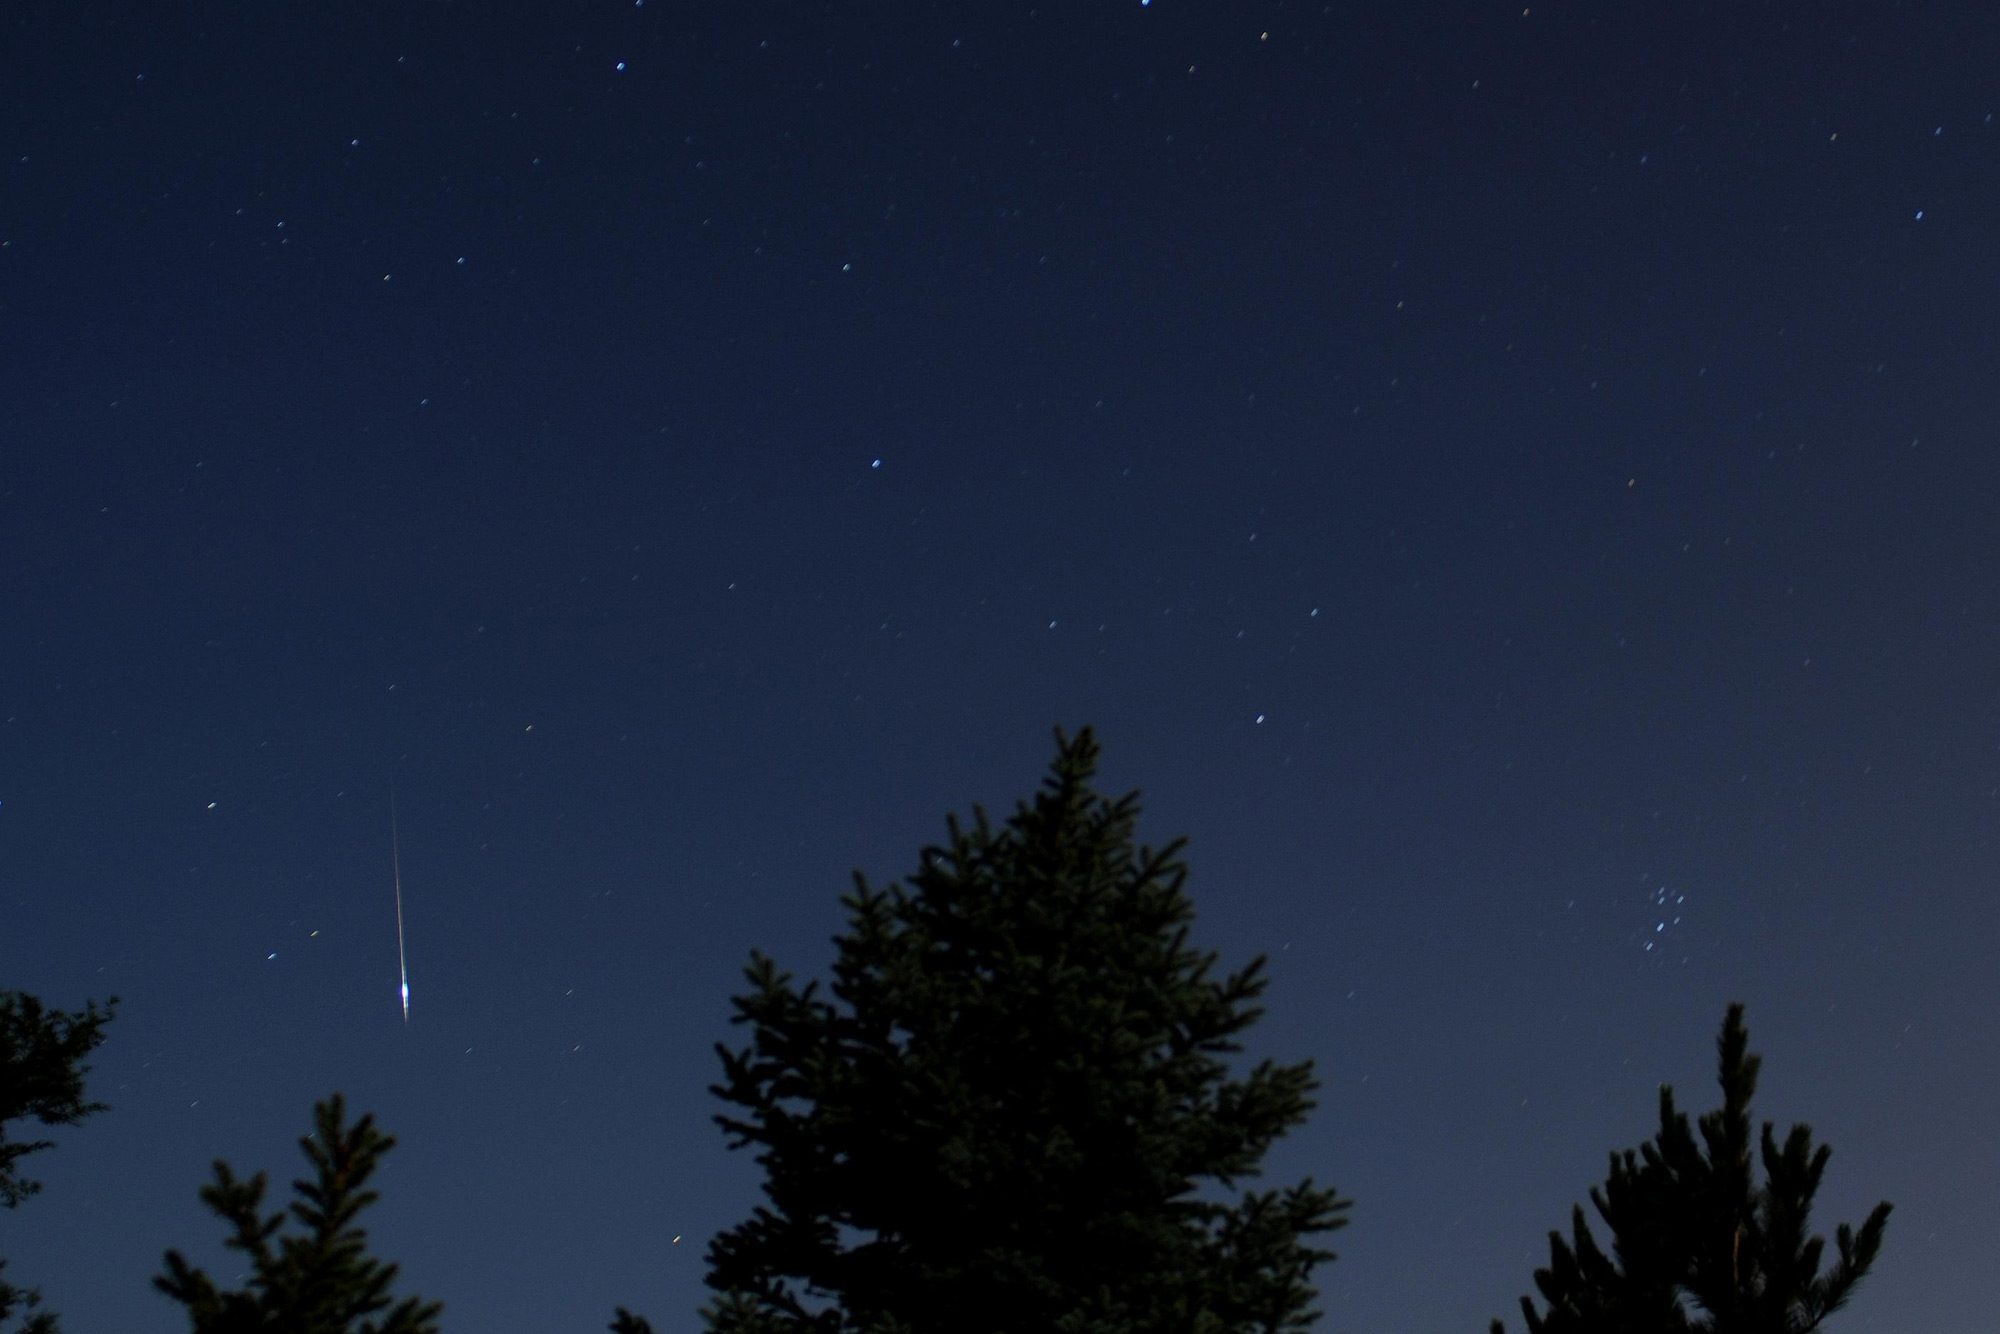 Perseid Meteor Near Wichita, Kansas, August 2011